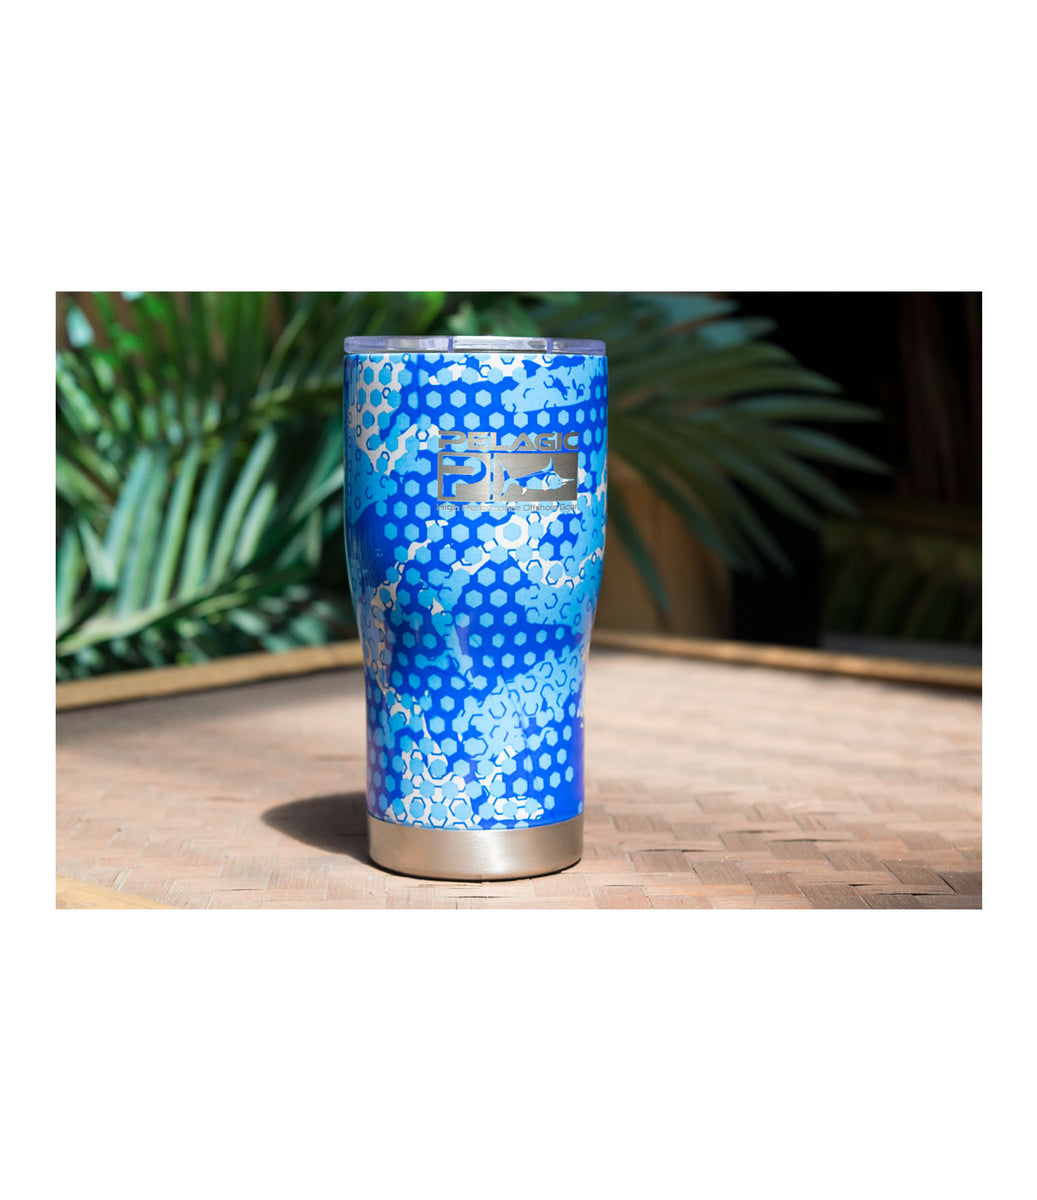 20 OZ. Insulated Tumbler Cup Big Image - 2